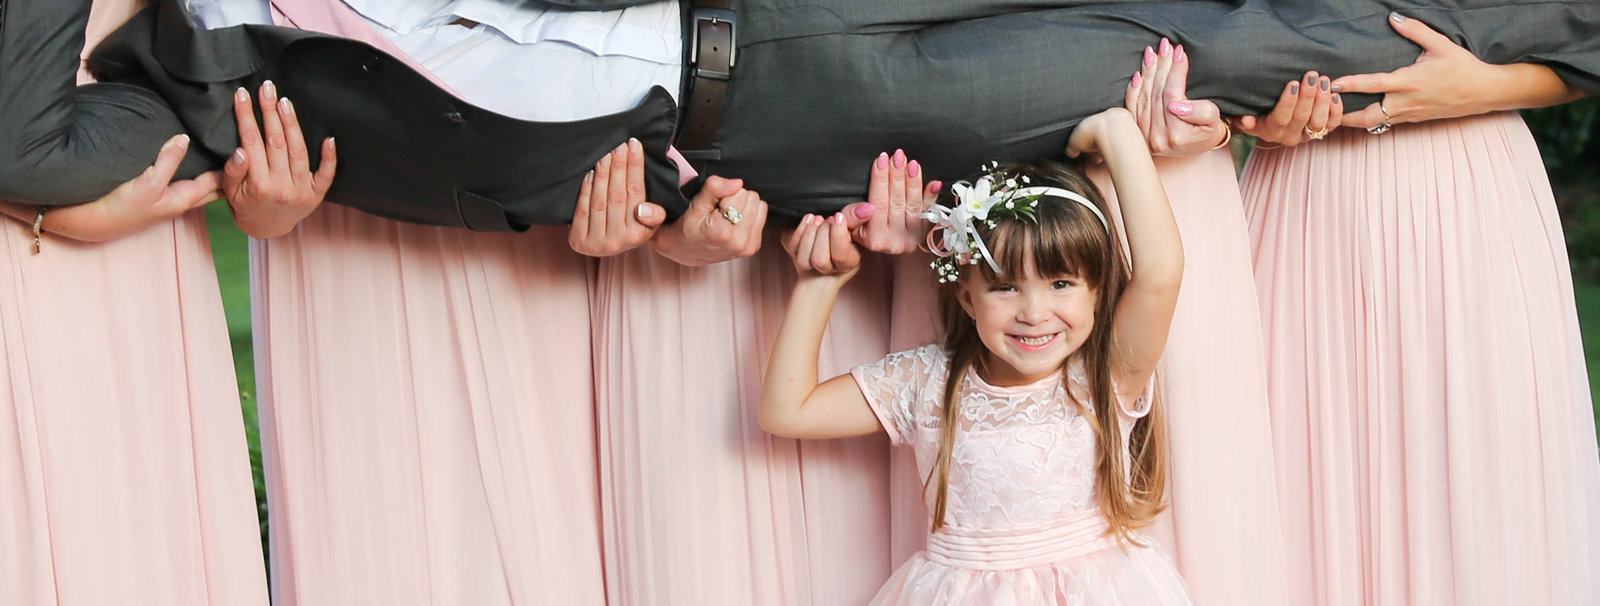 Flower girl fun shot with bridal party. Photo by Ross Photography, Trinidad, W.I..